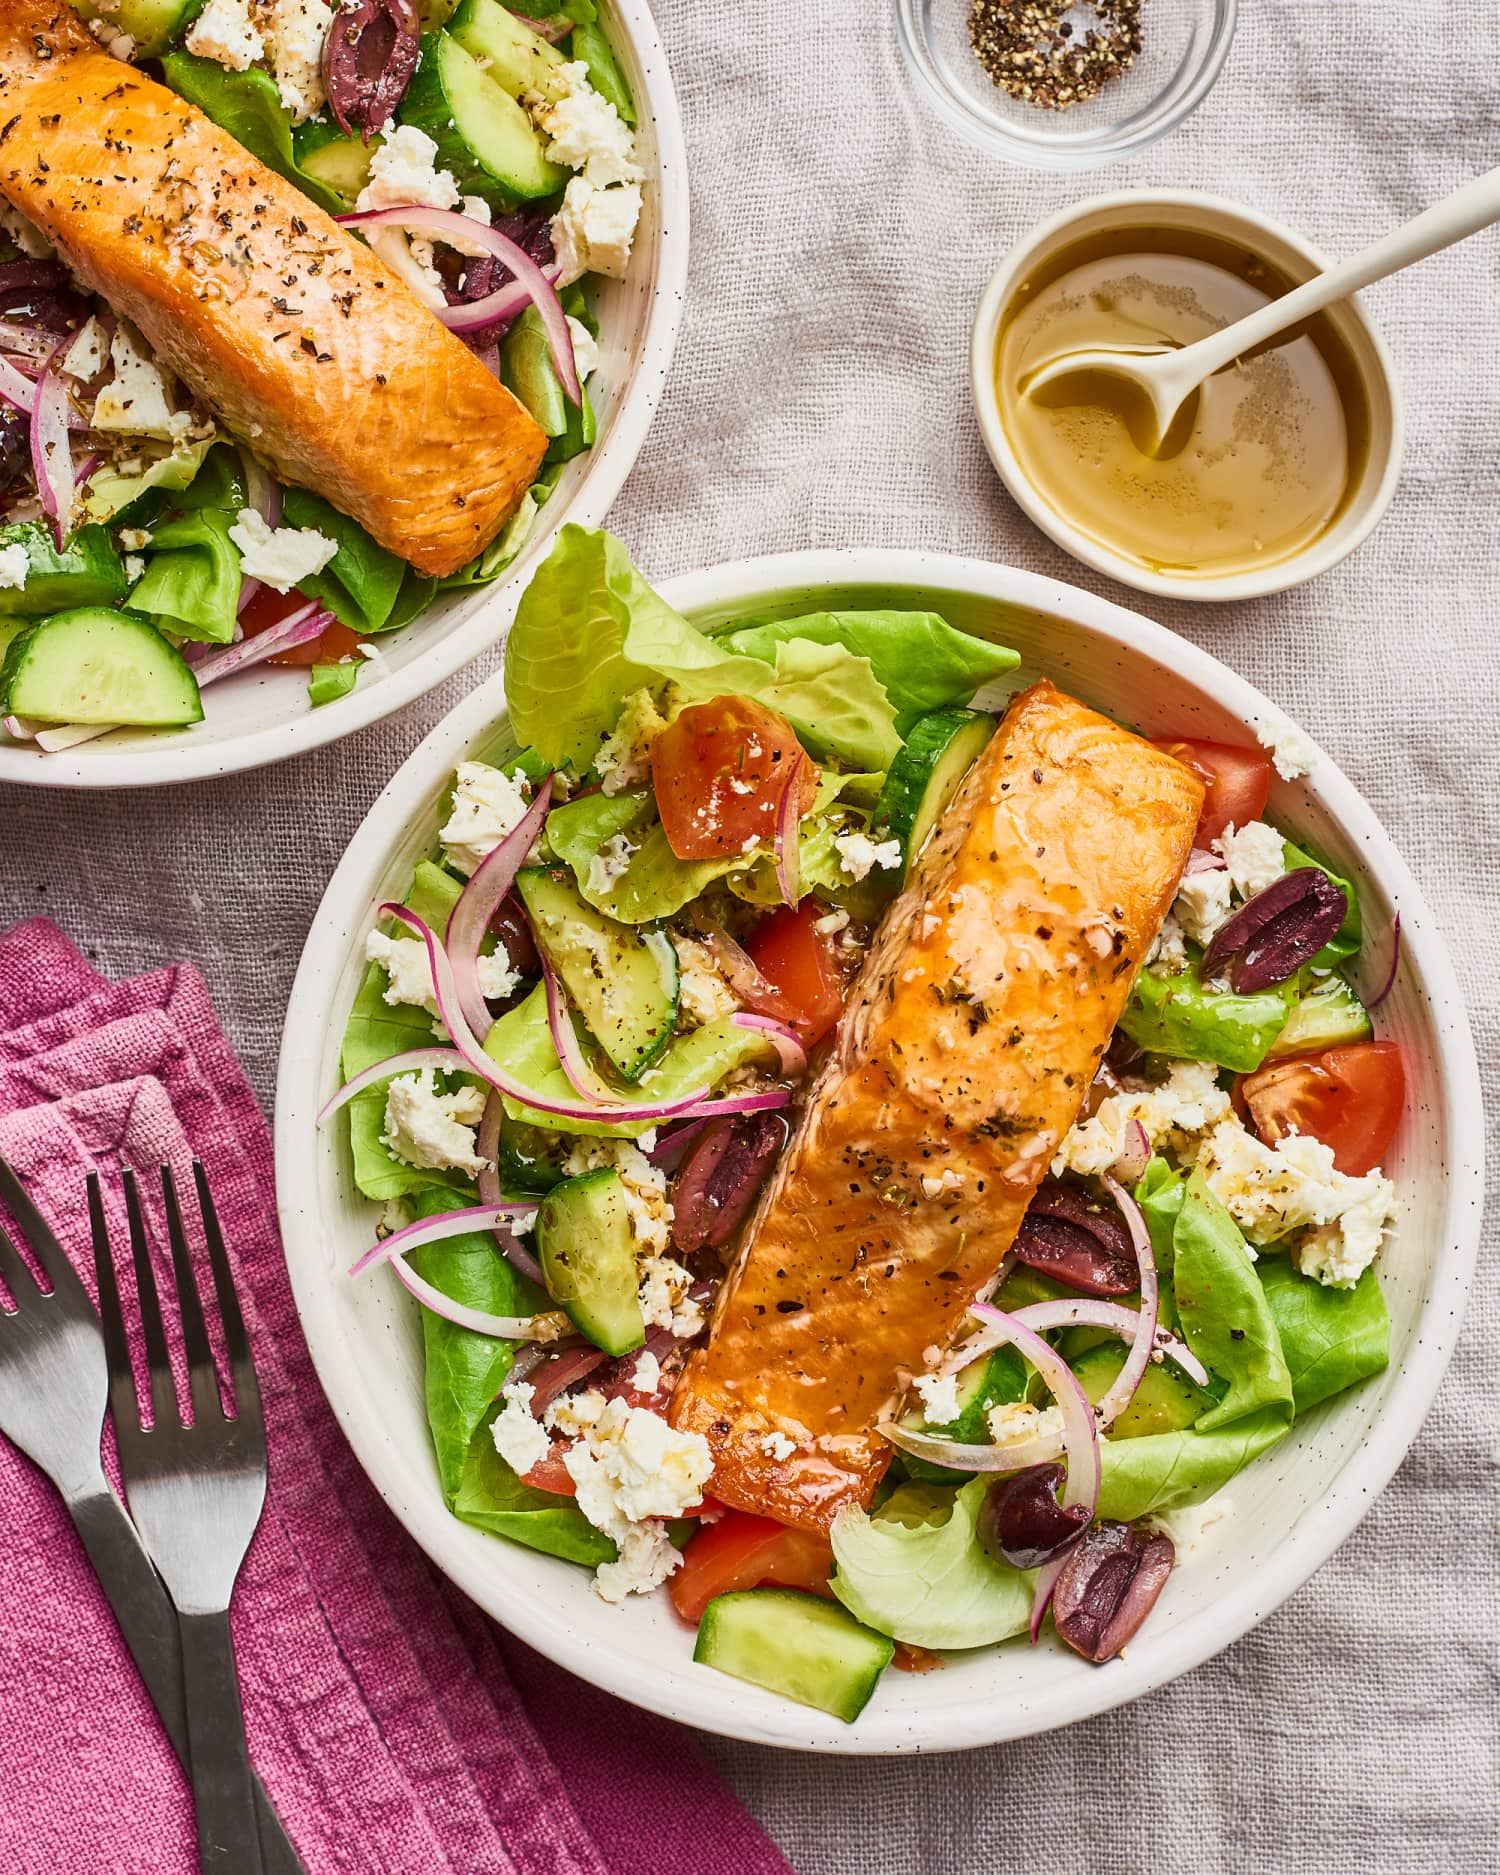 This Is the Top Salad Recipe on Pinterest